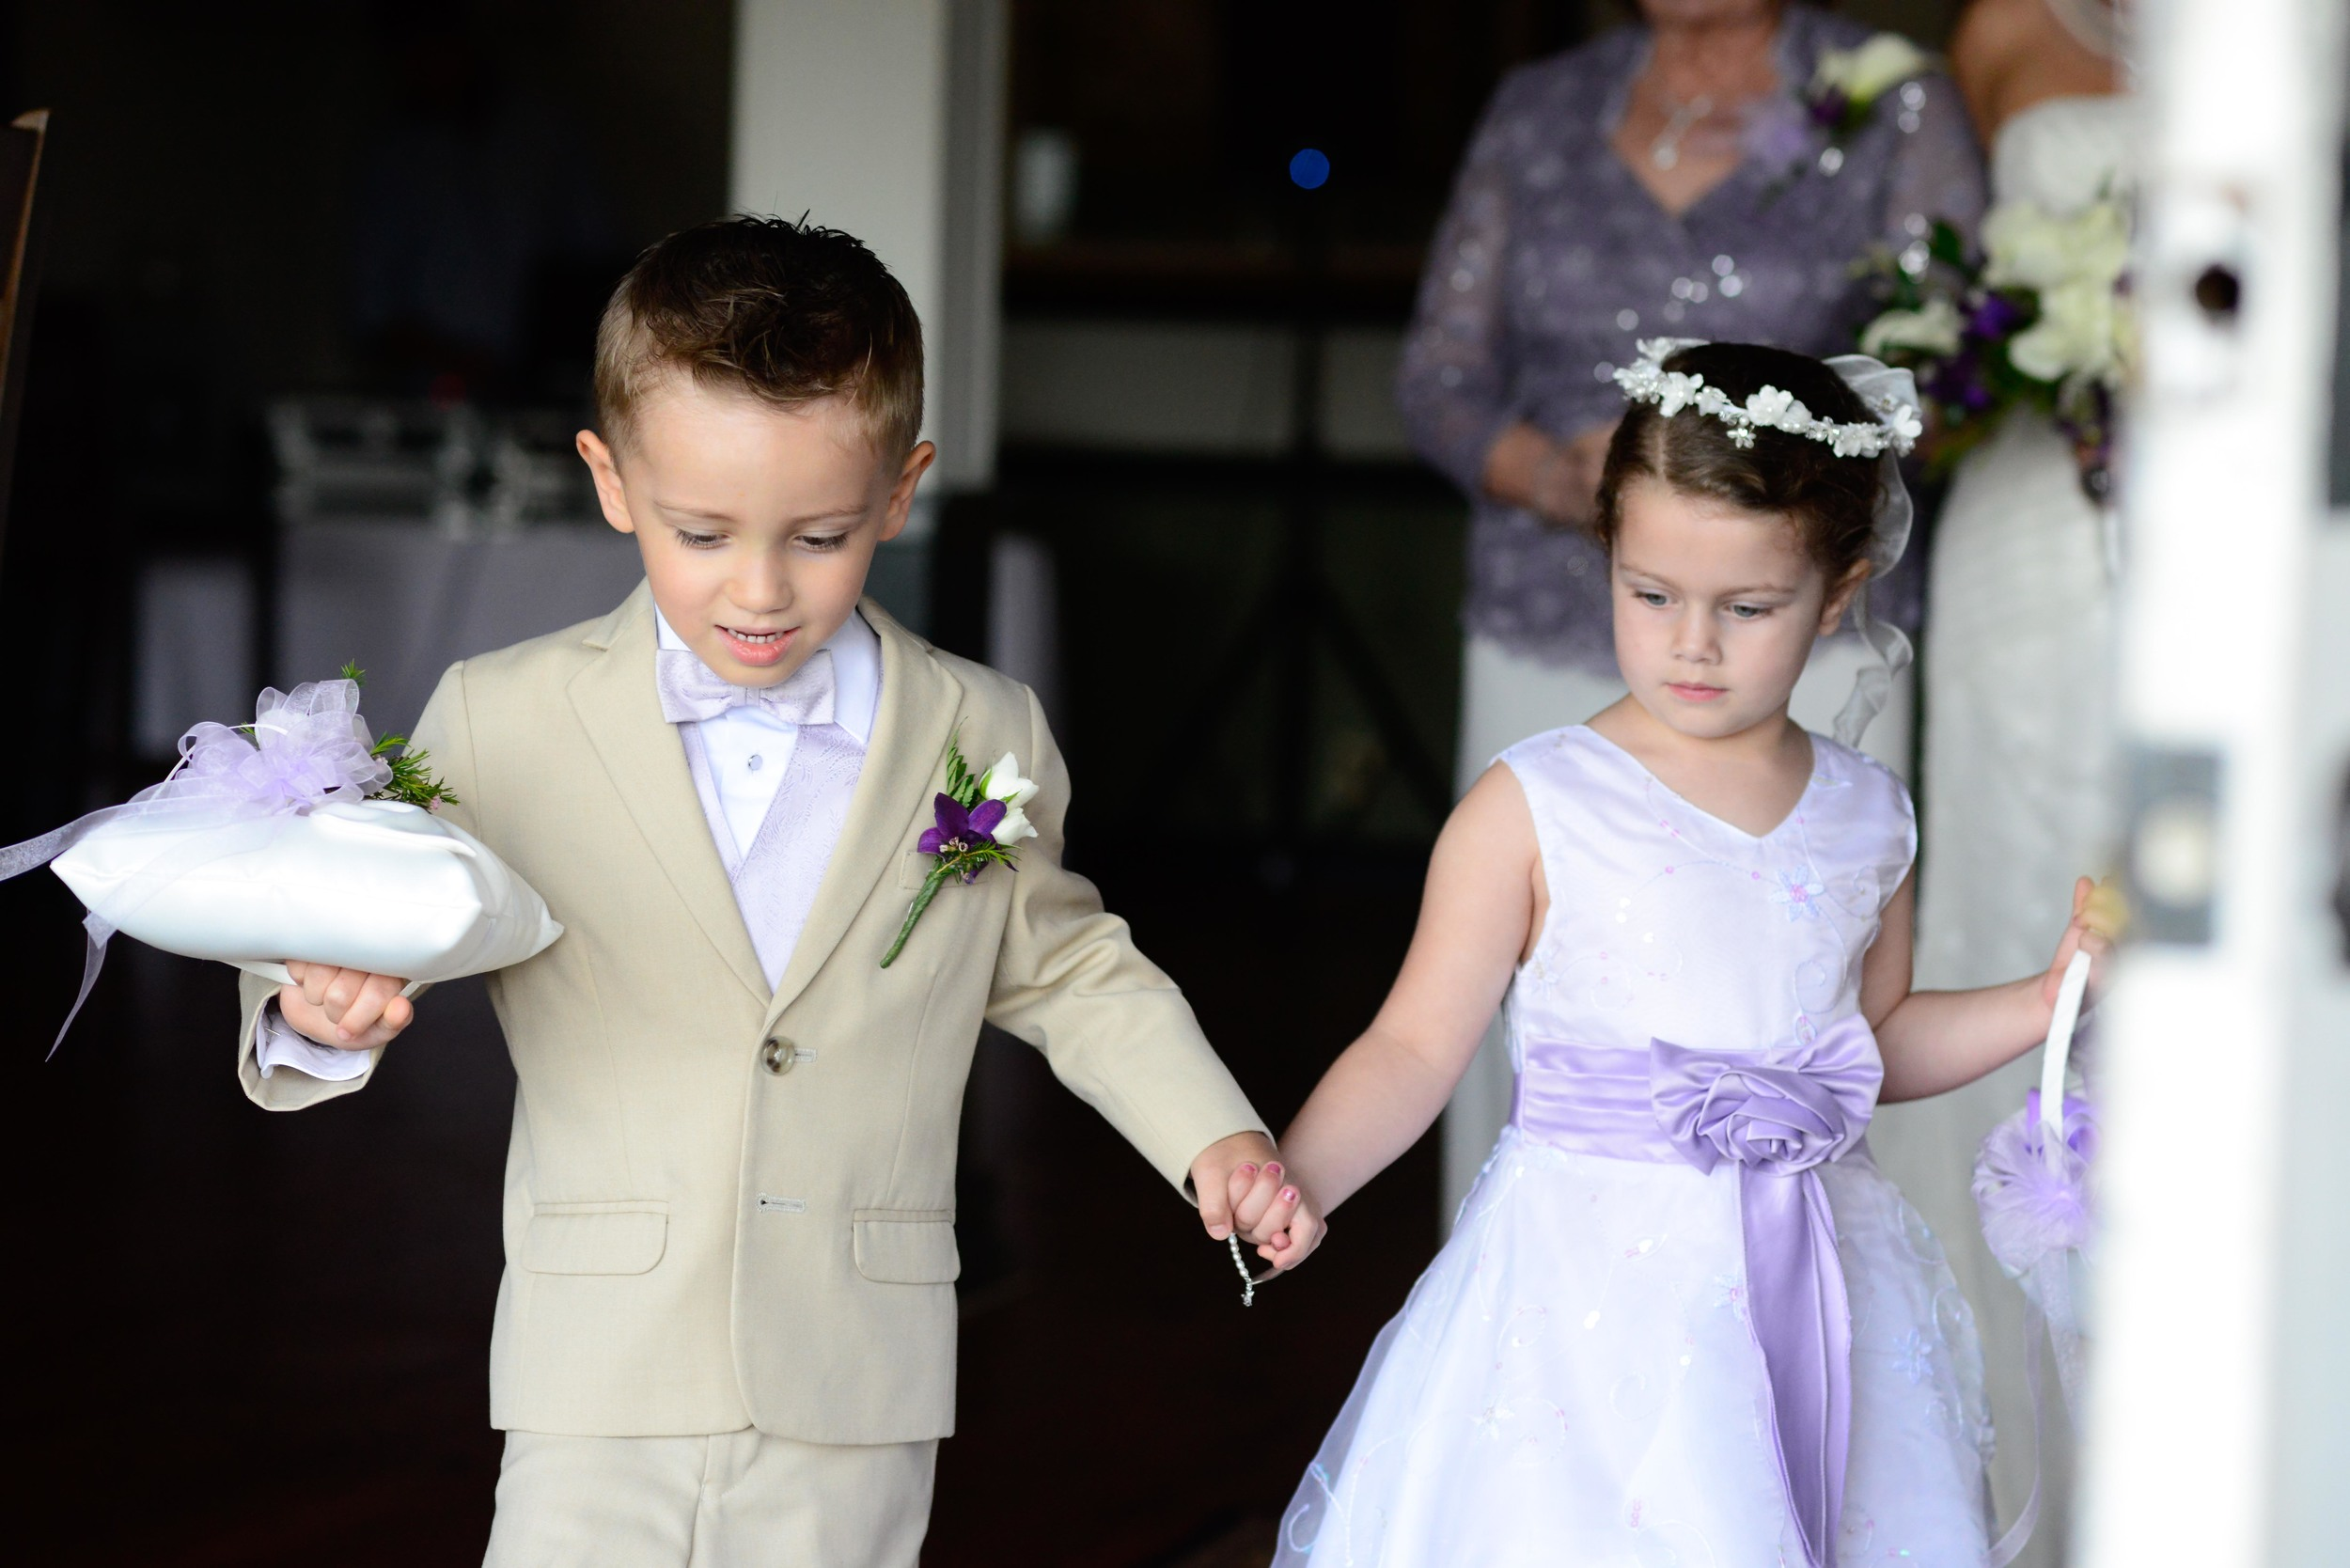 The Flower Girl and Ring bearer in Lilac, White, and Beige.